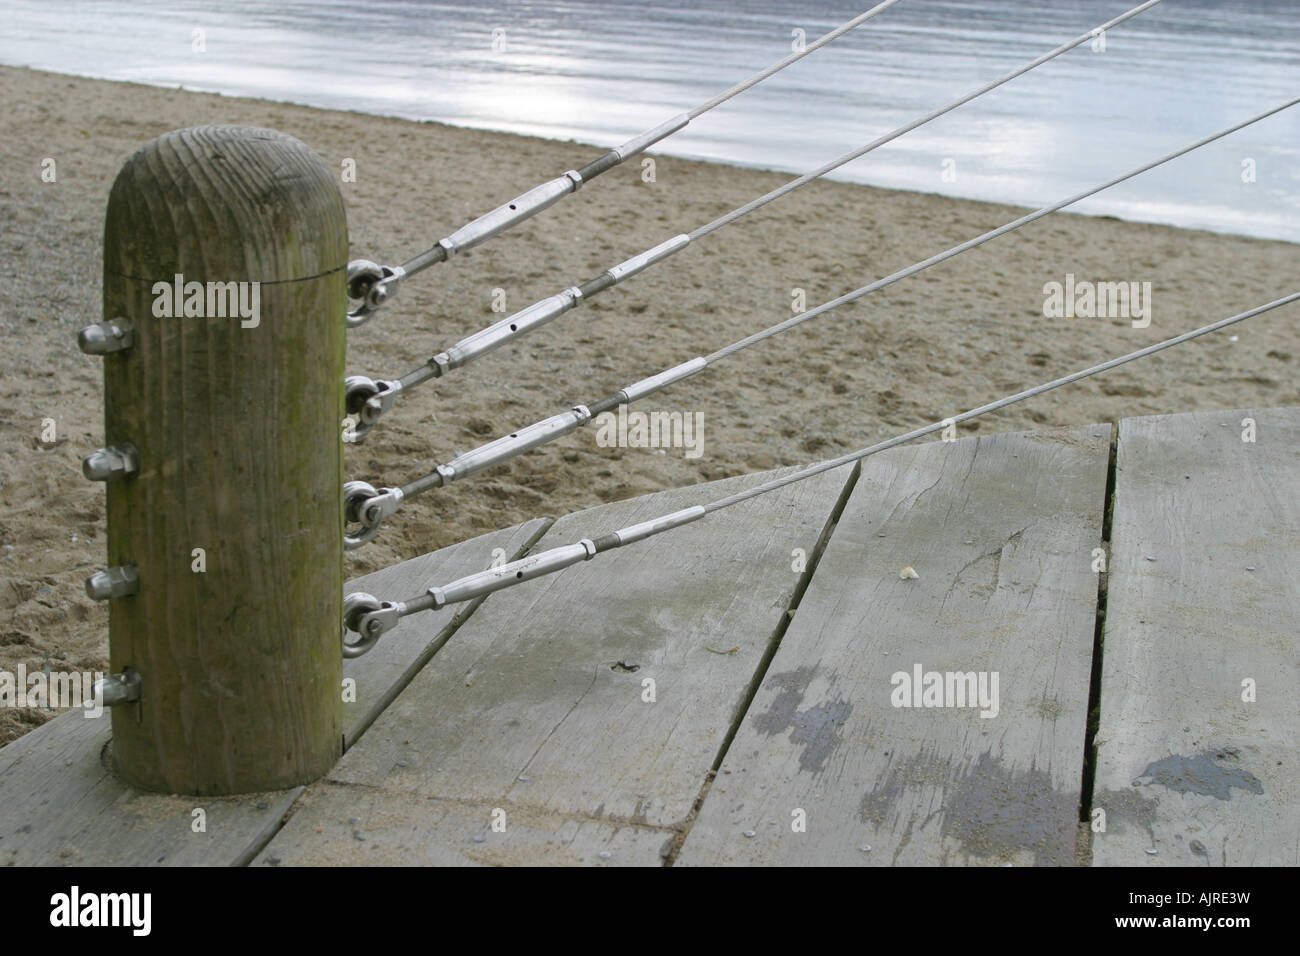 Tension wire fence and wooden post Stock Photo: 14797260 - Alamy